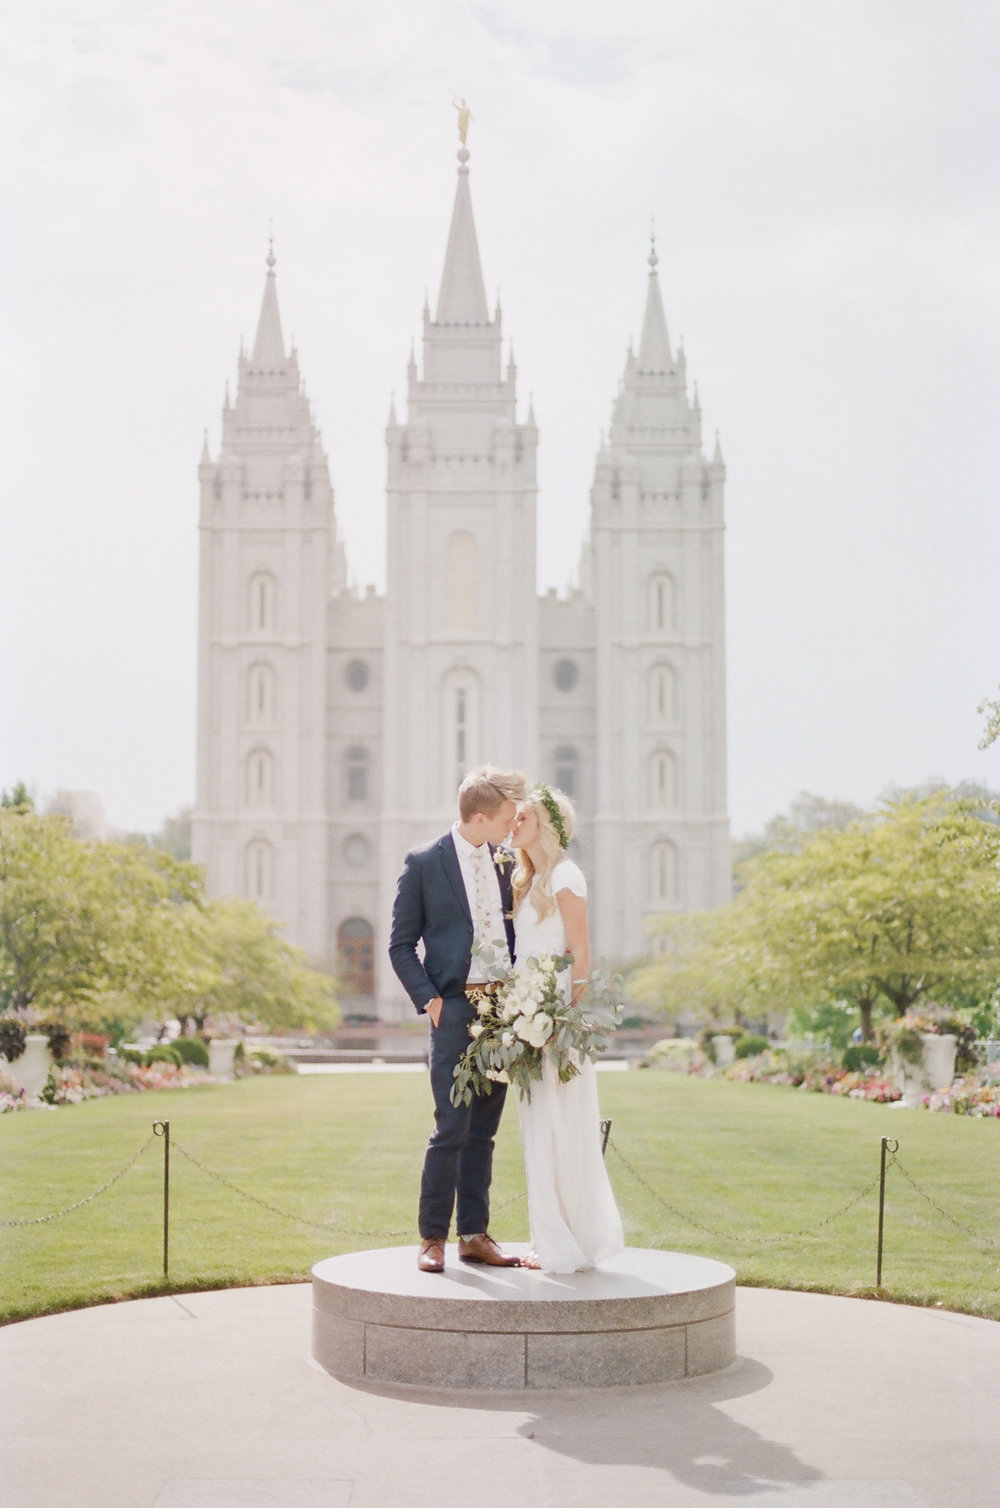 Wynona Benson Photography - Jaleisa & Logan Romantic Elegant Utah Wedding00053.jpg